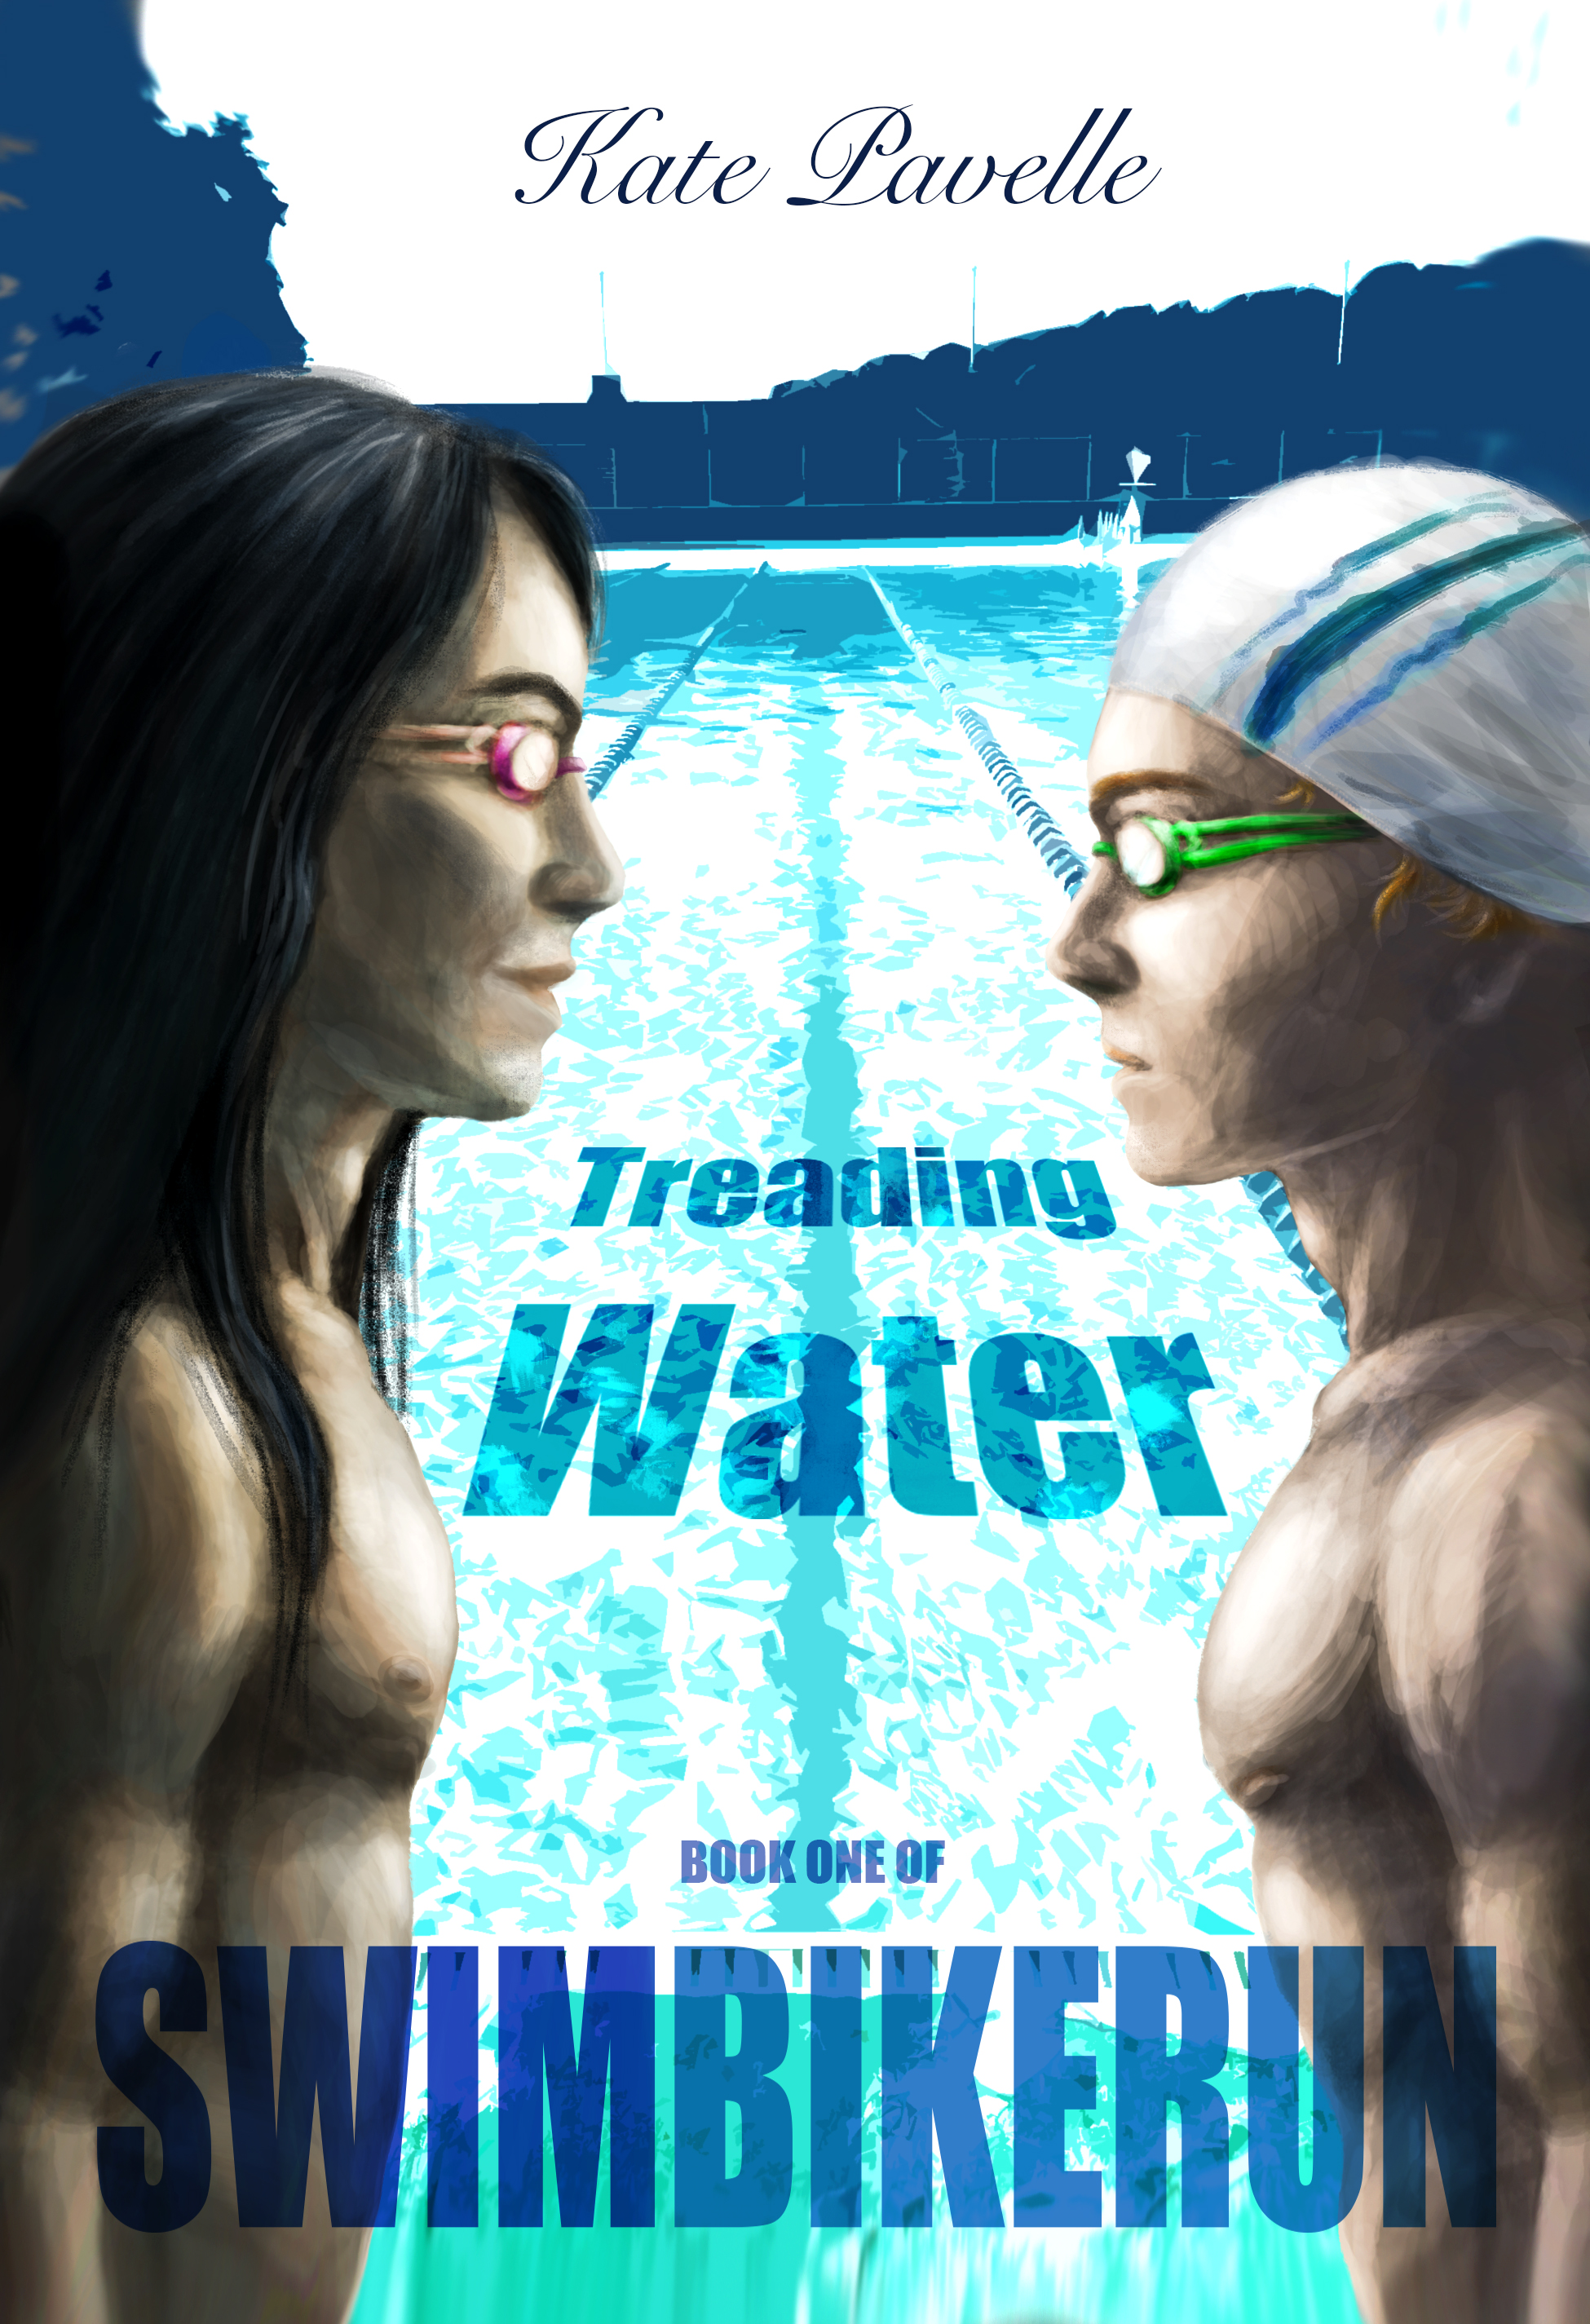 Guest Post and Giveaway: Treading Water by Kate Pavelle